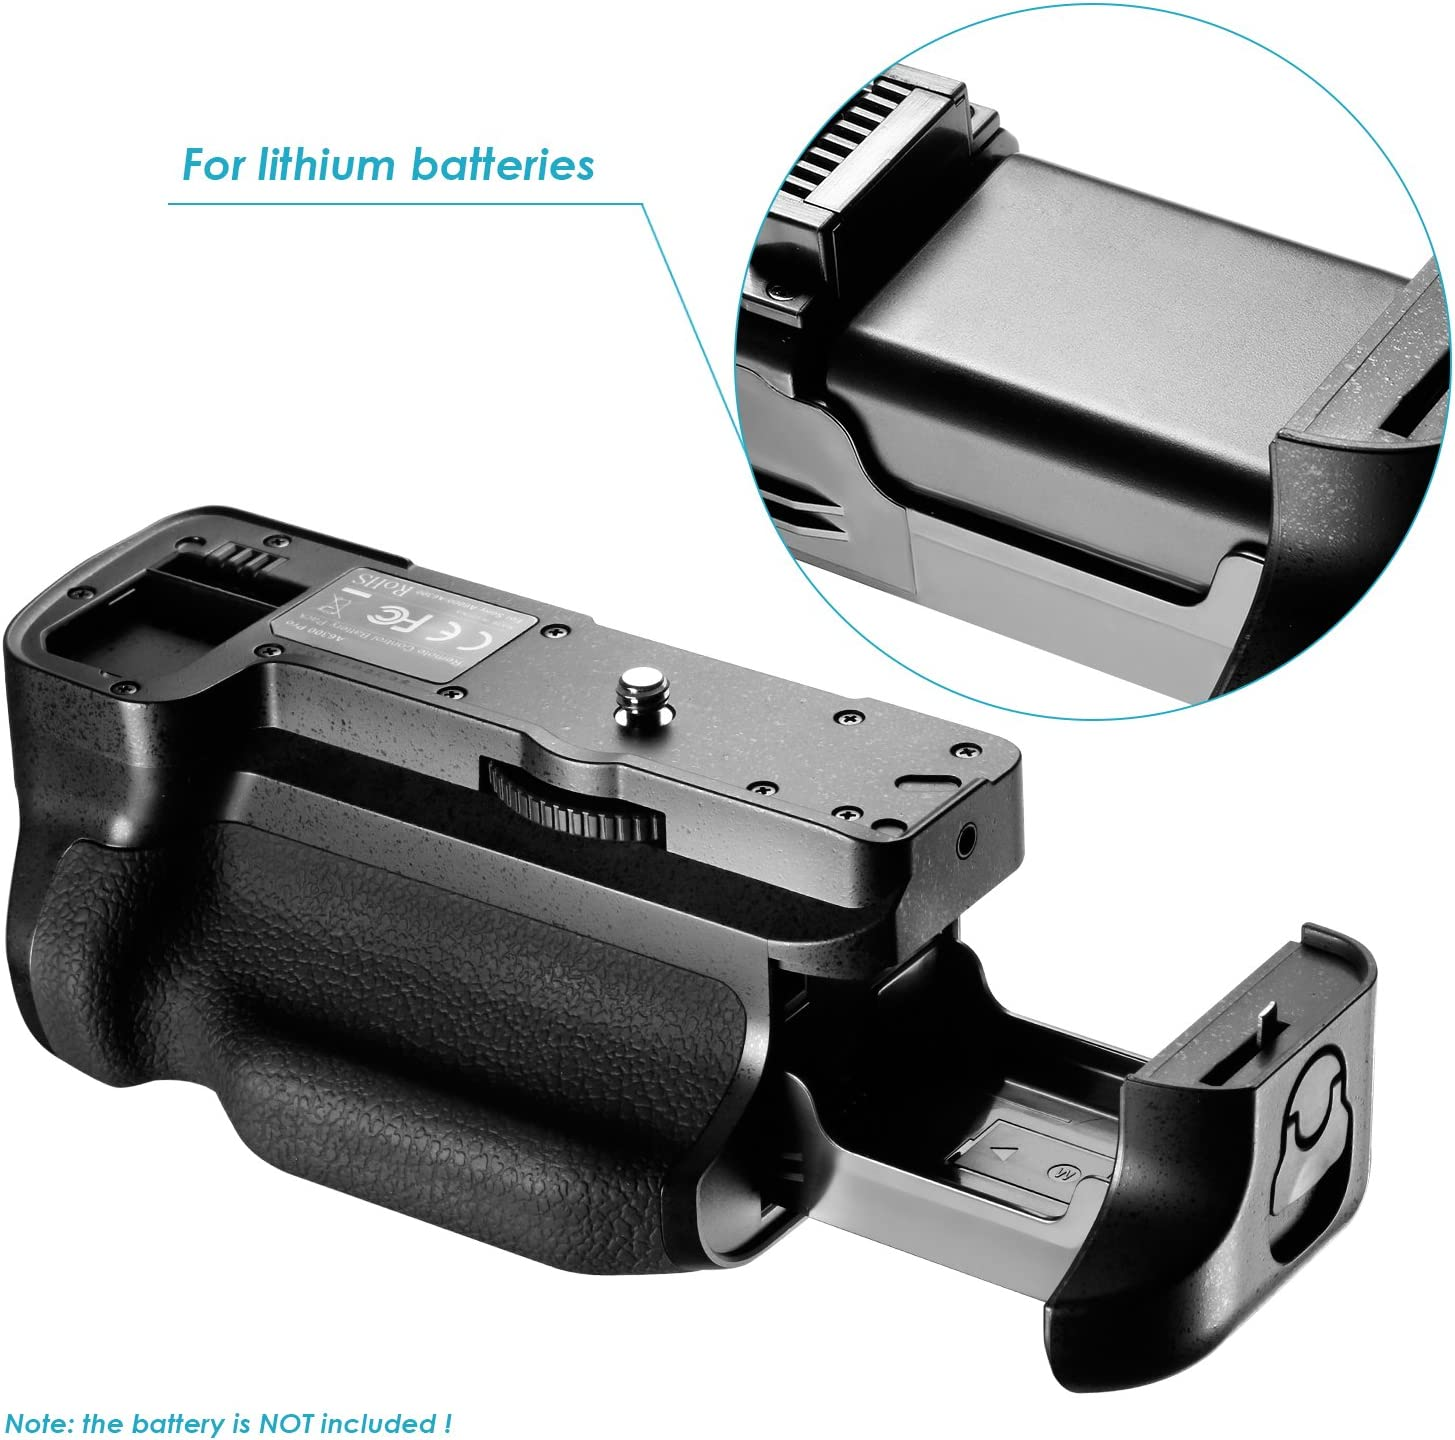 2 Pieces 1100mAh Replacement Li-ion Battery for Sony FW50 and USB Input 5V//2.1A Dual Charger Neewer Battery Grip Kit with Built-in 2.4GHz Remote Control for Sony A6300 Camera